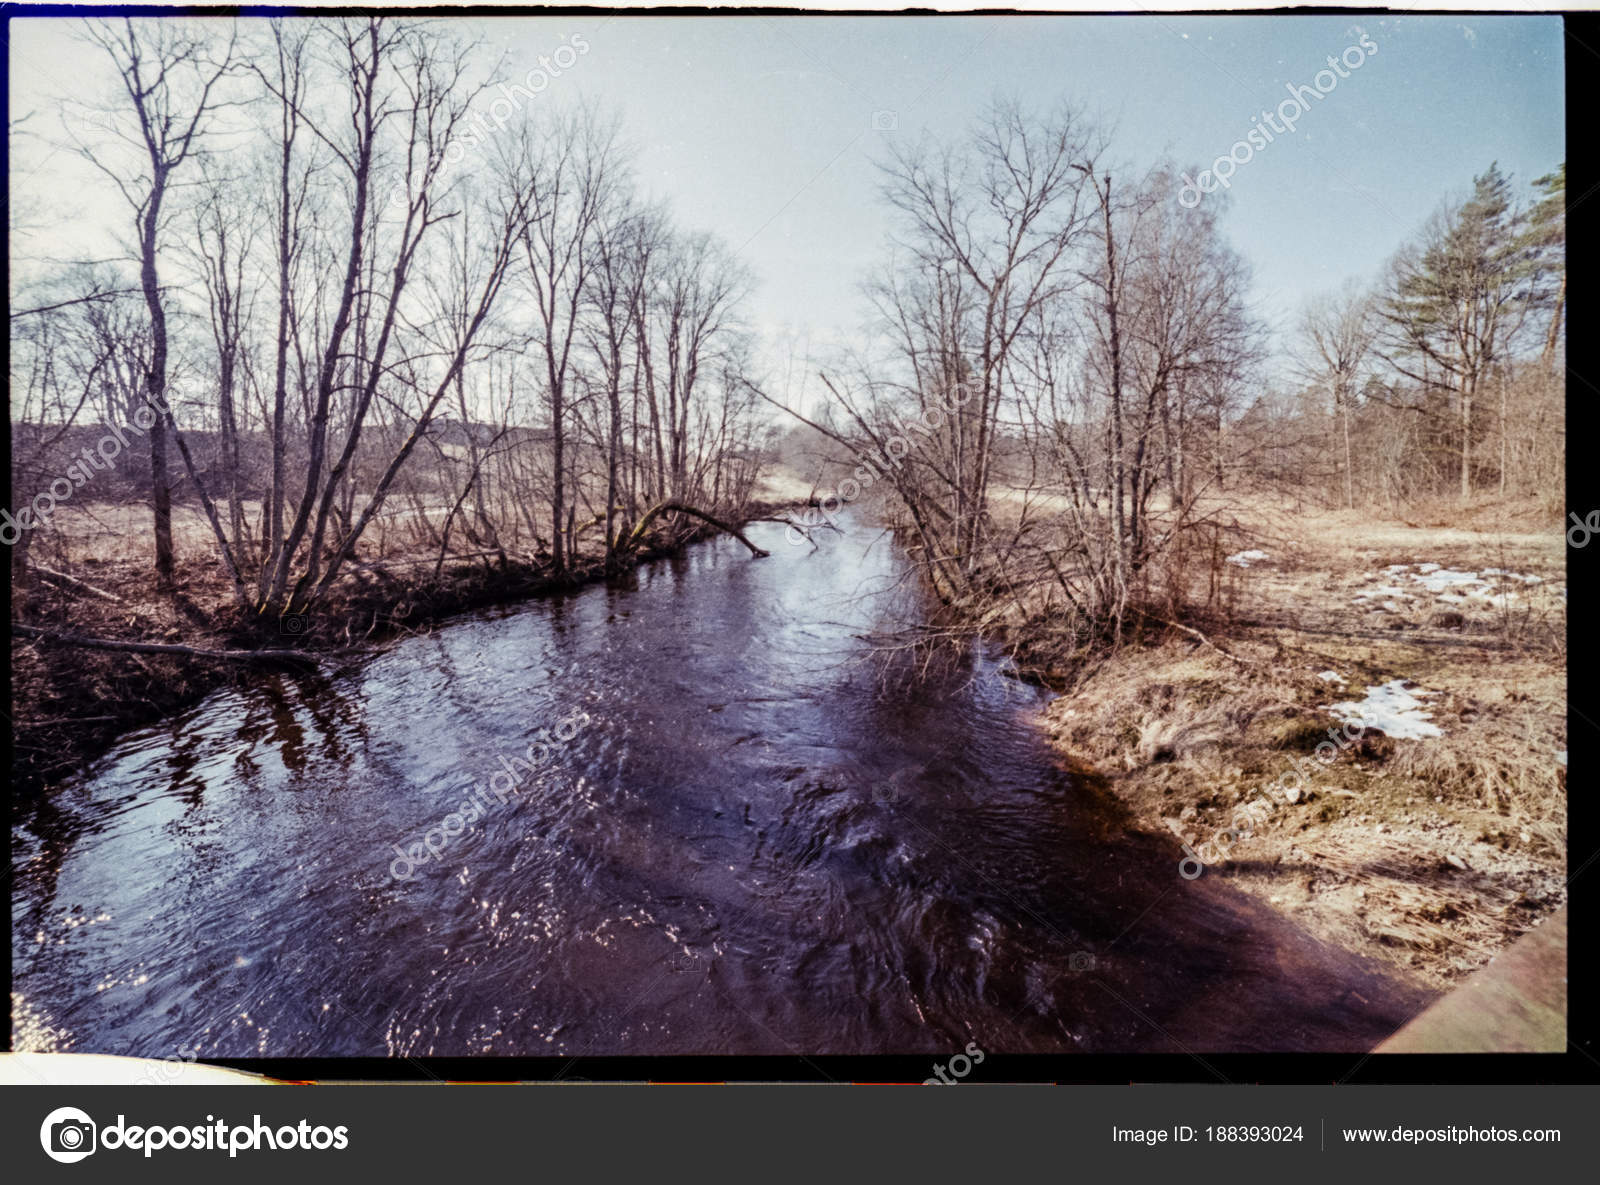 Imperfect Color Slide Film Scan With Dust And Scratches Country Stock Photo Image By C Martinsvanags 188393024